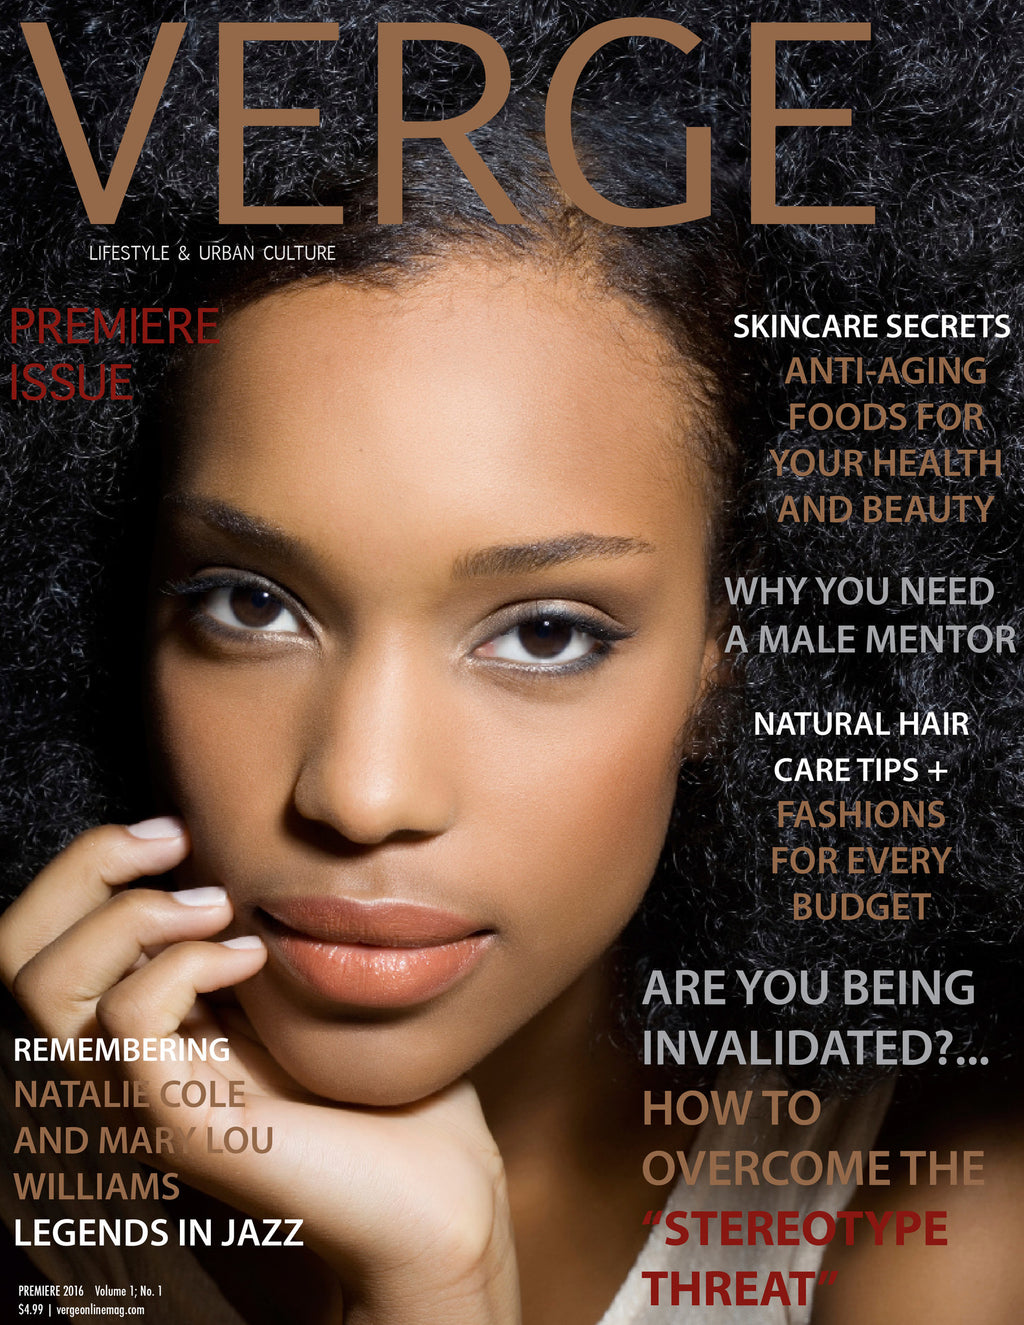 VERGE Lifestyle & Urban Culture Magazine - Magazine - Digital Premiere Issue 2016